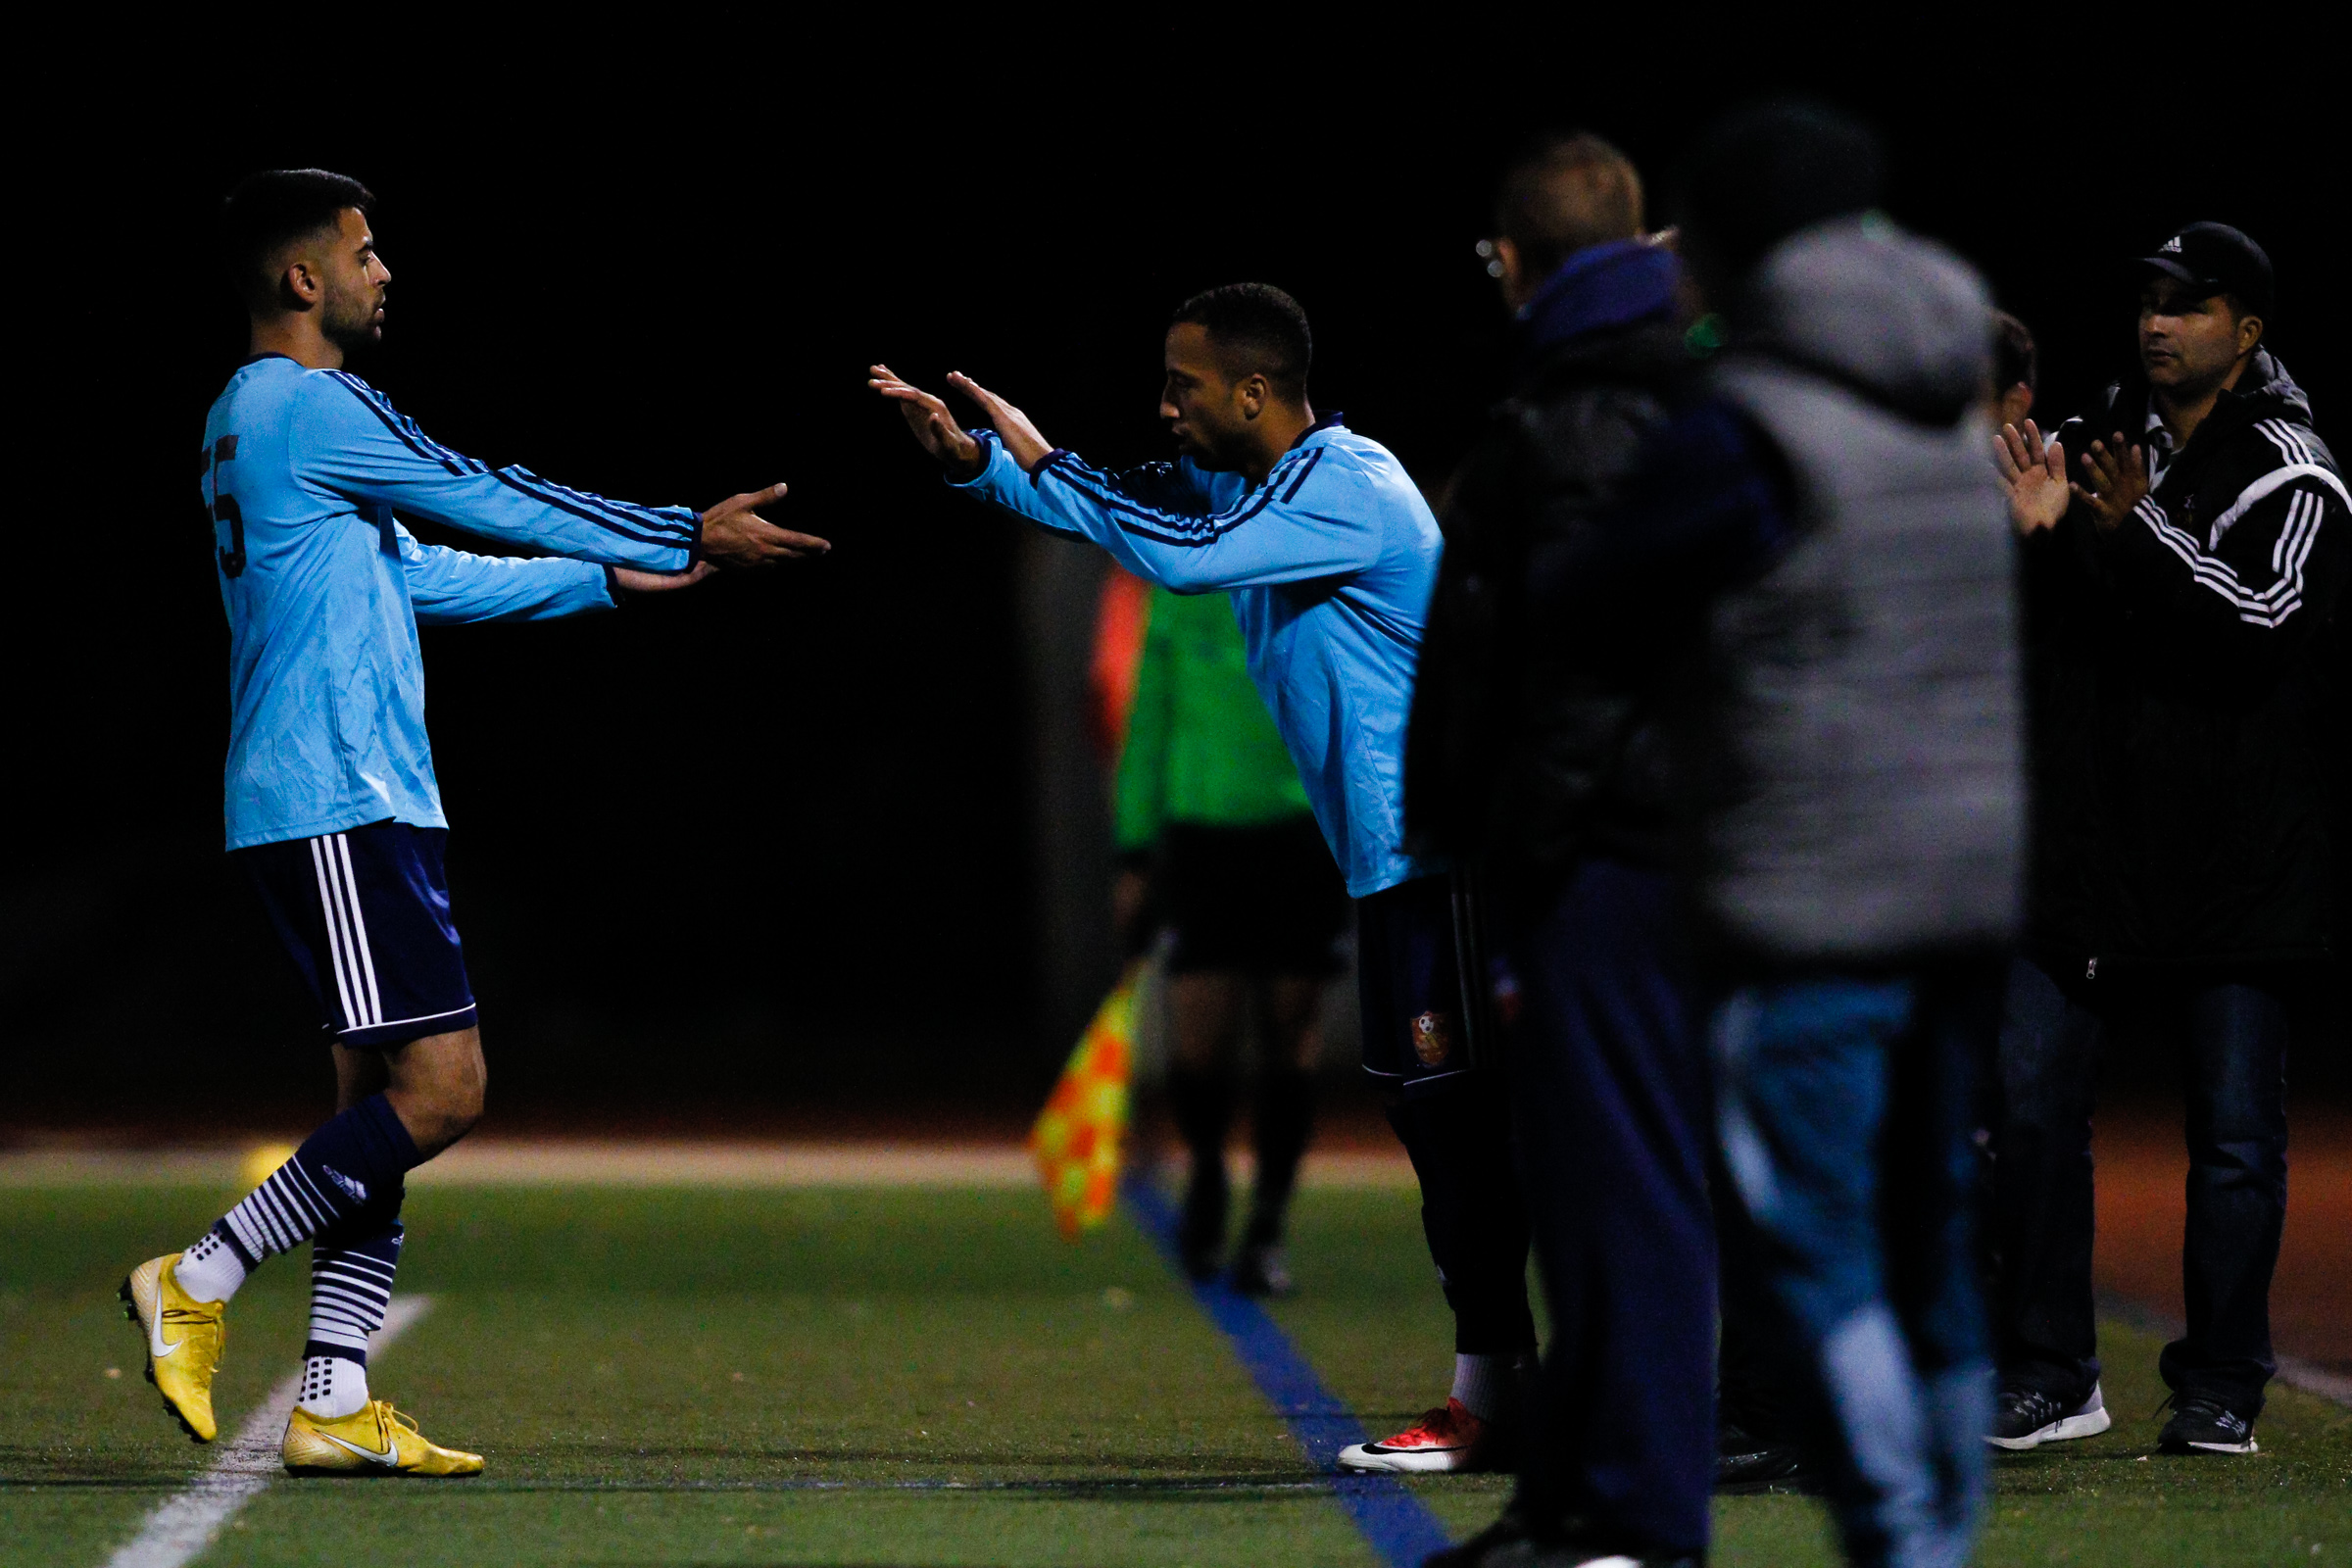 Somerville, MA: Wendell de Matos (Safira #55) is subbed off in the second half. Safira FC defeated Boston City FC 4-1 in a 2019 Lamar Hunt U.S. Open Cup game on October 20, 2018. (c) Burt Granofsky